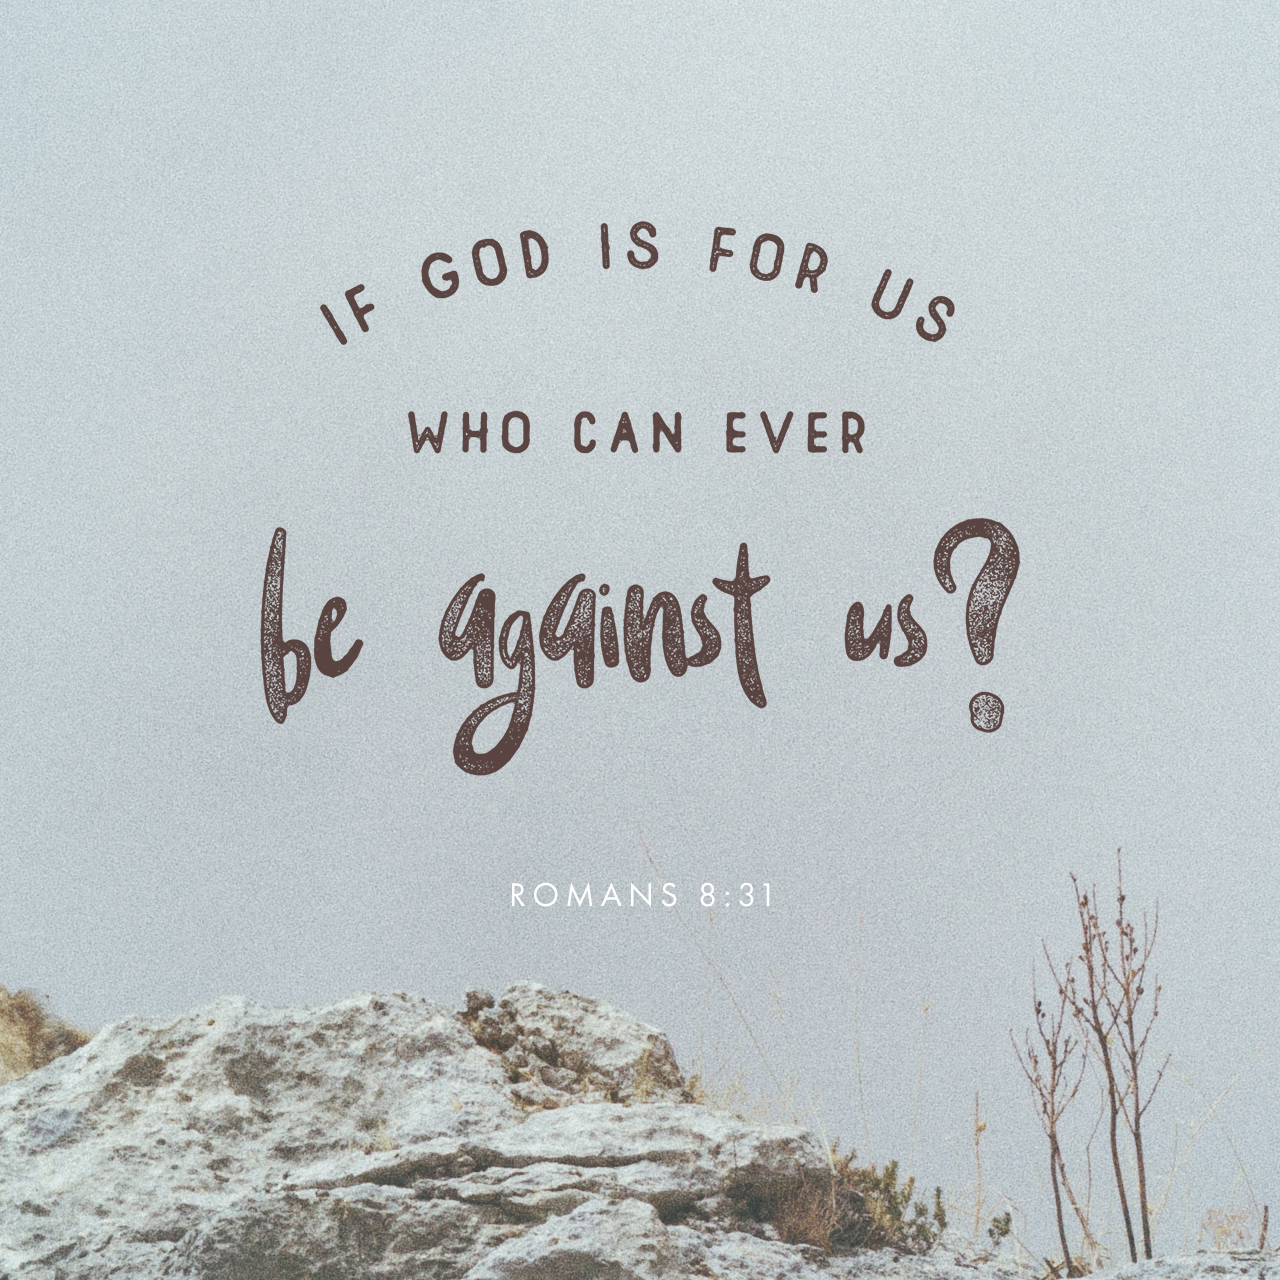 Who Can Stand Against Us?